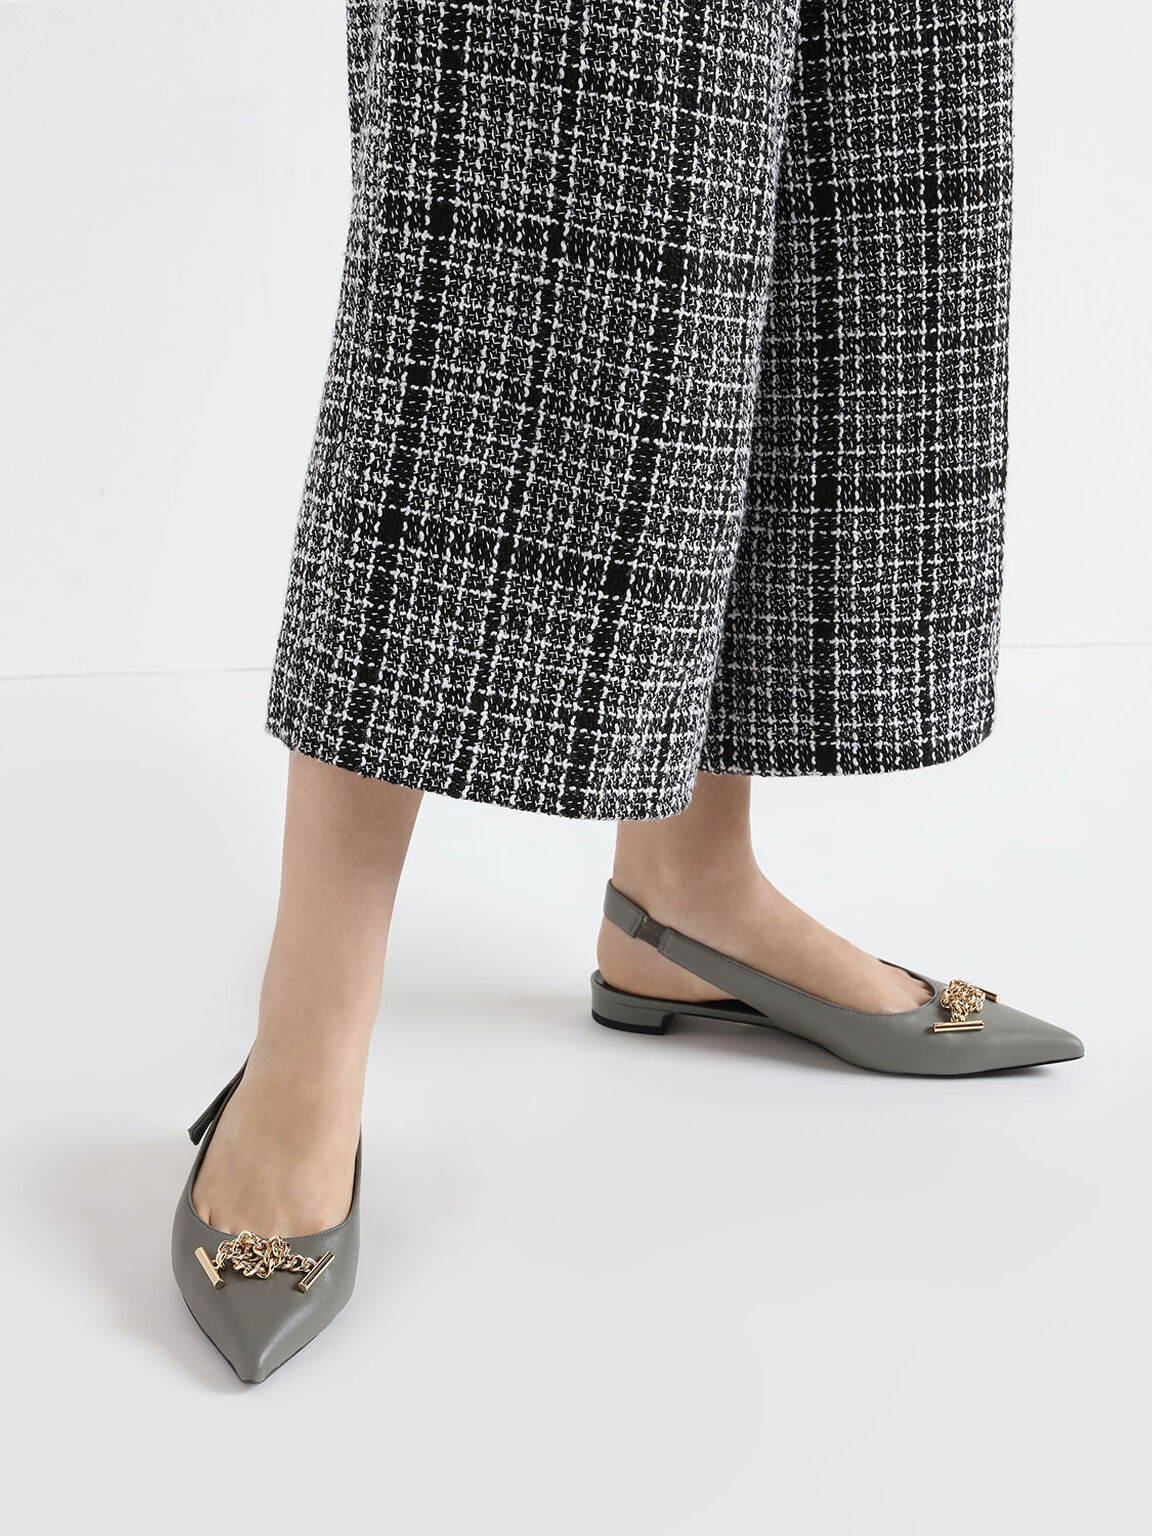 Knotted Chain Detail Leather Slingback Flats, Sage Green, hi-res